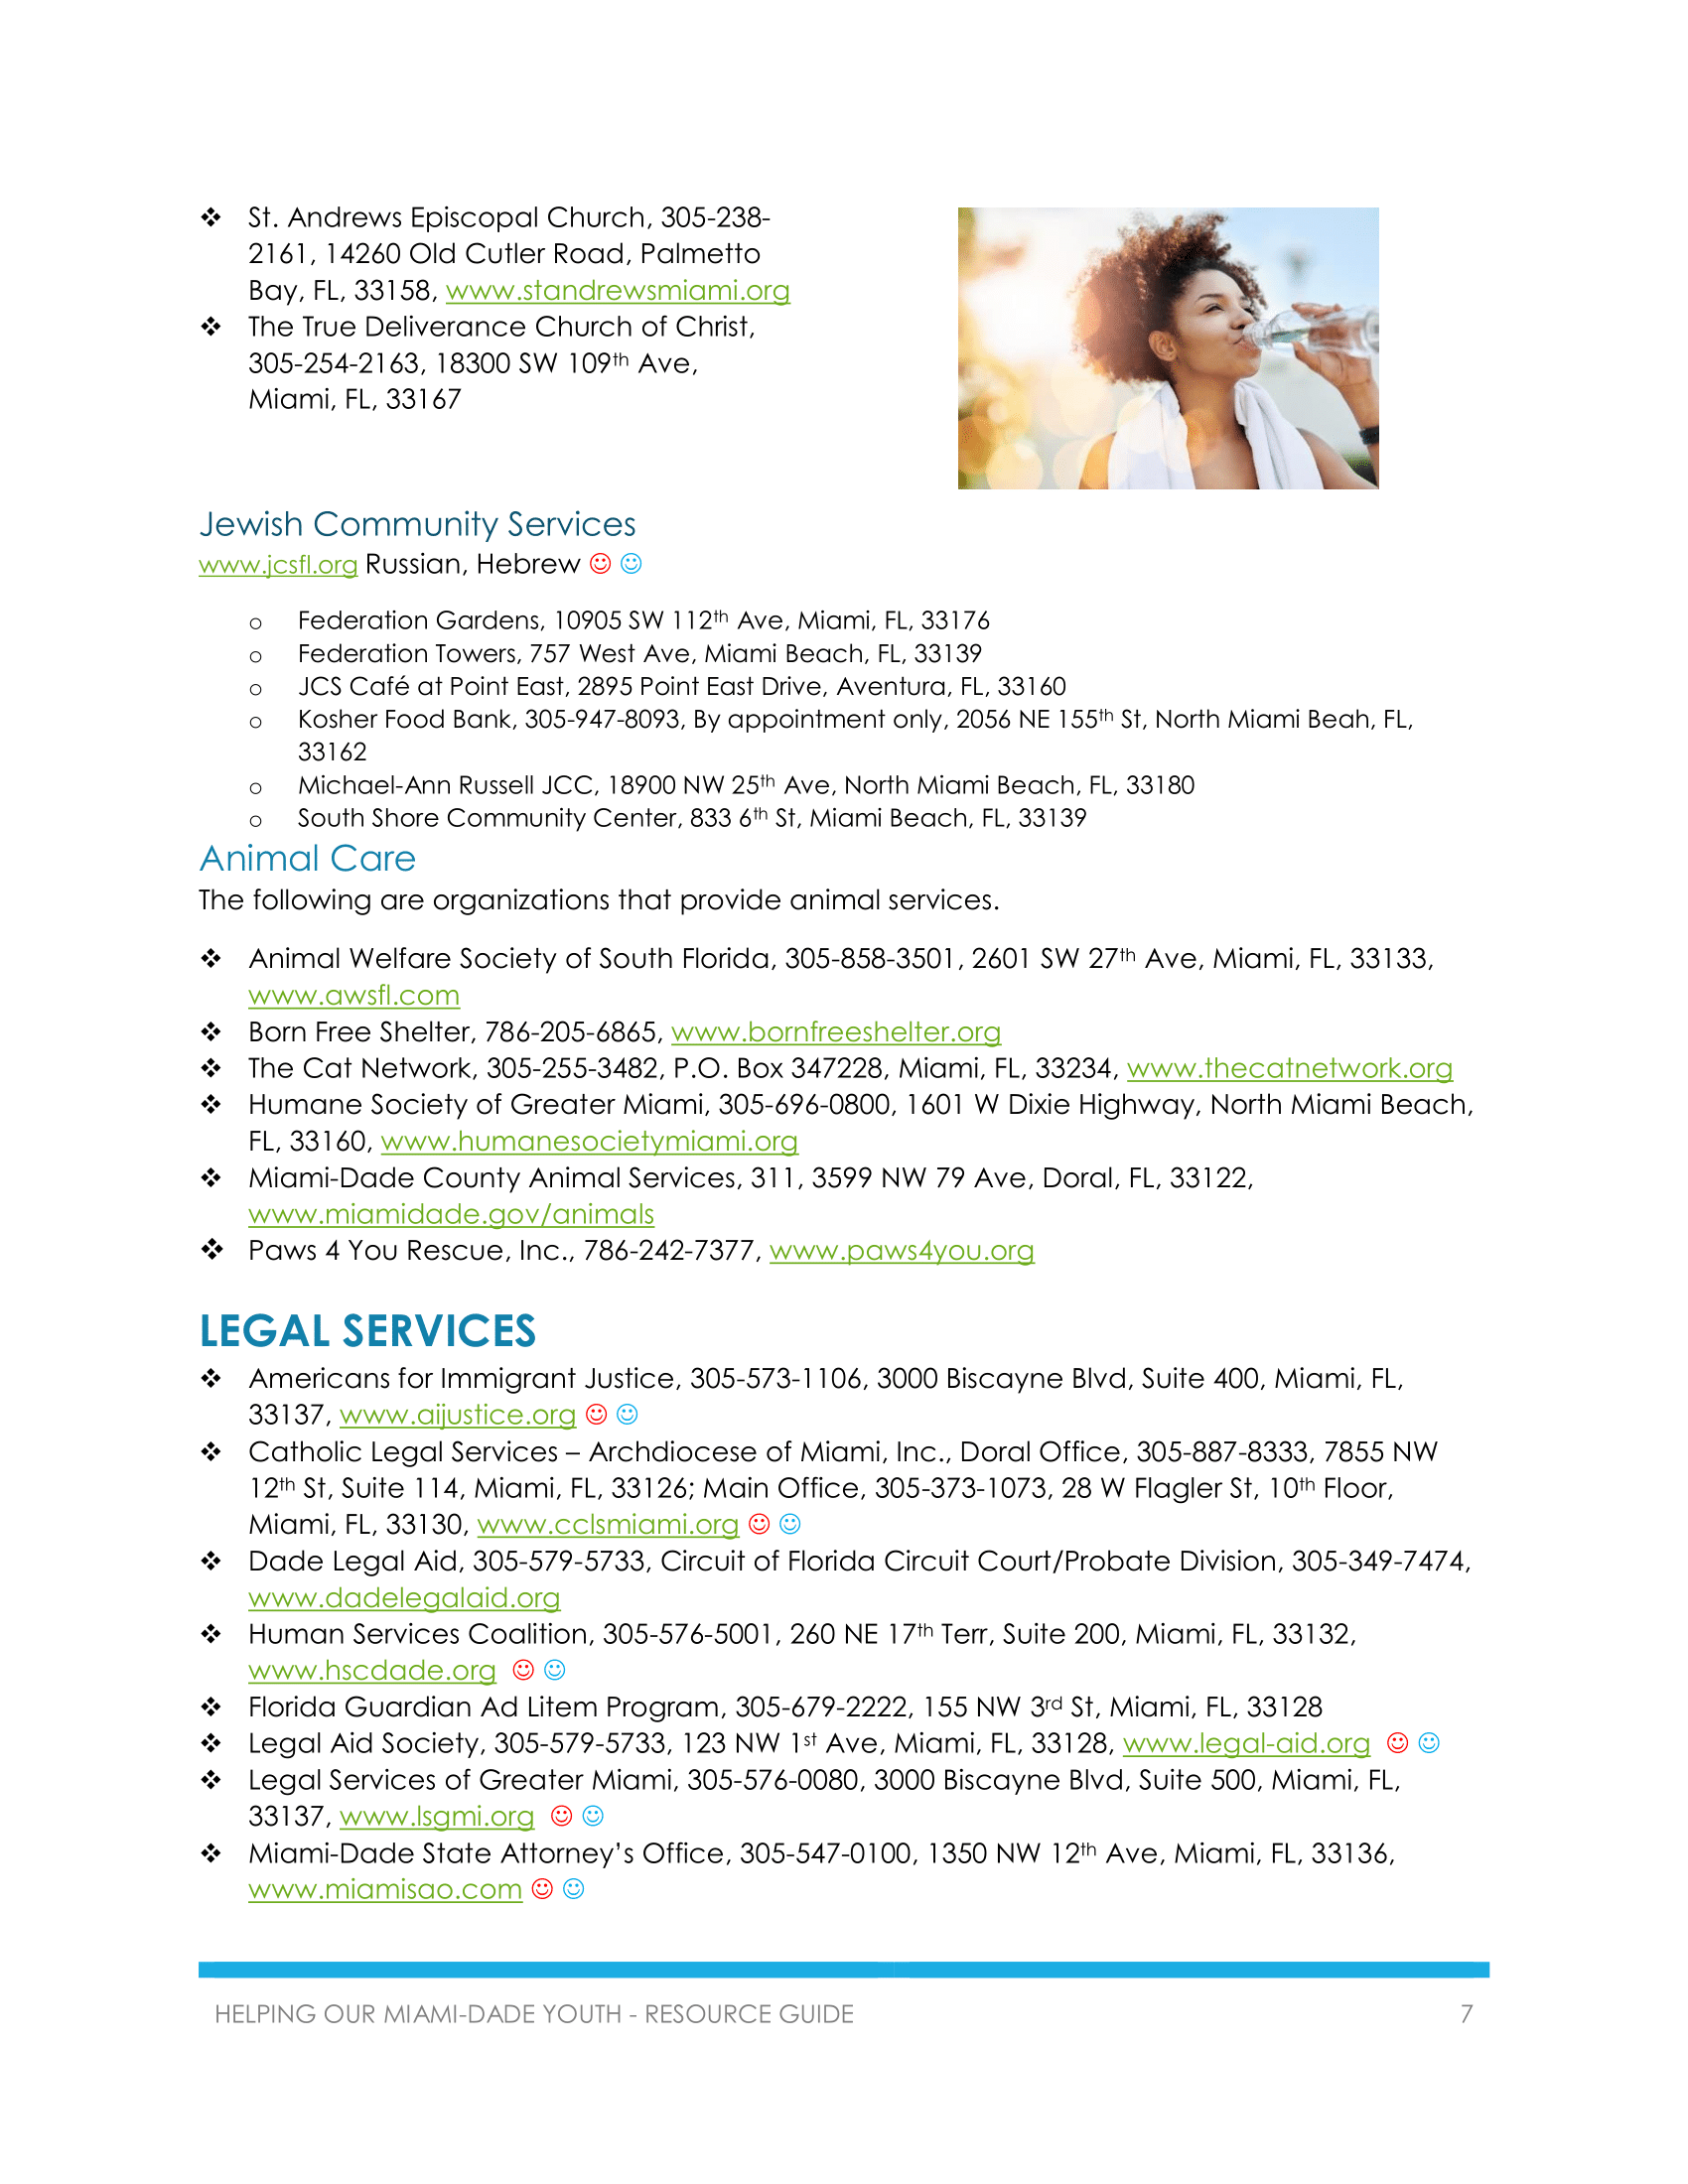 Youth Resource Guide - May 2018-12.png